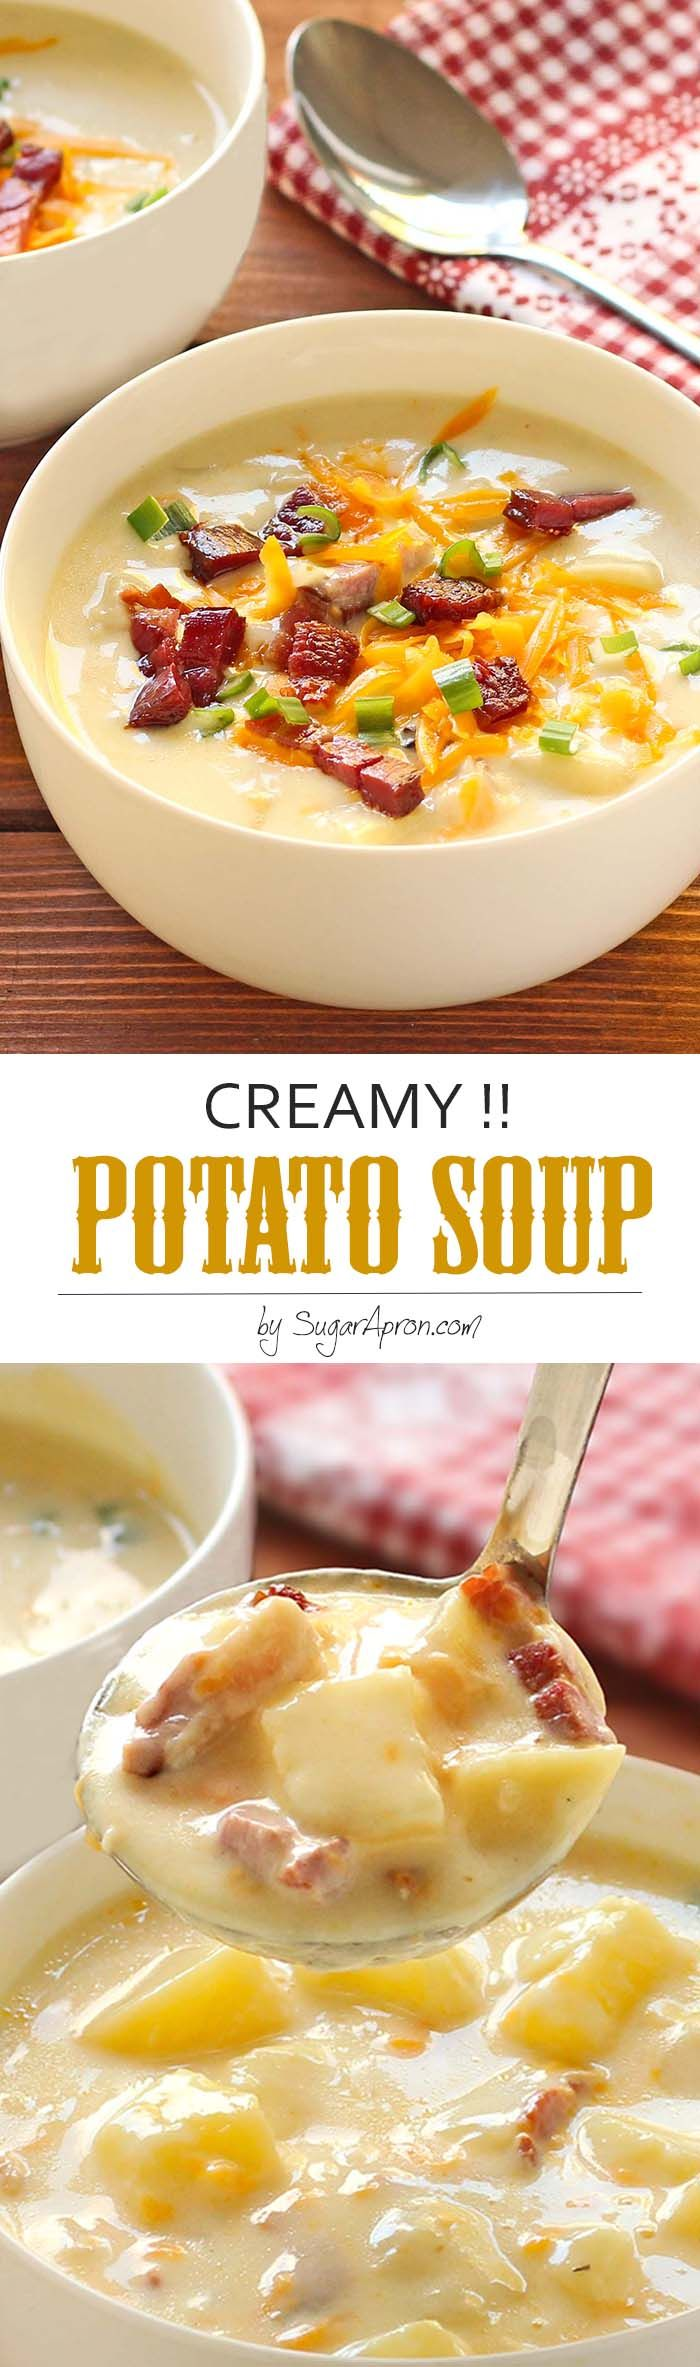 Creamy Potato Soup - The ultimate in comfort foods. Thick, rich, creamy potato soup that's ready in less than an hour, any night you want it. YES. Sure to warm your heart from the inside on even the coldest winter night.